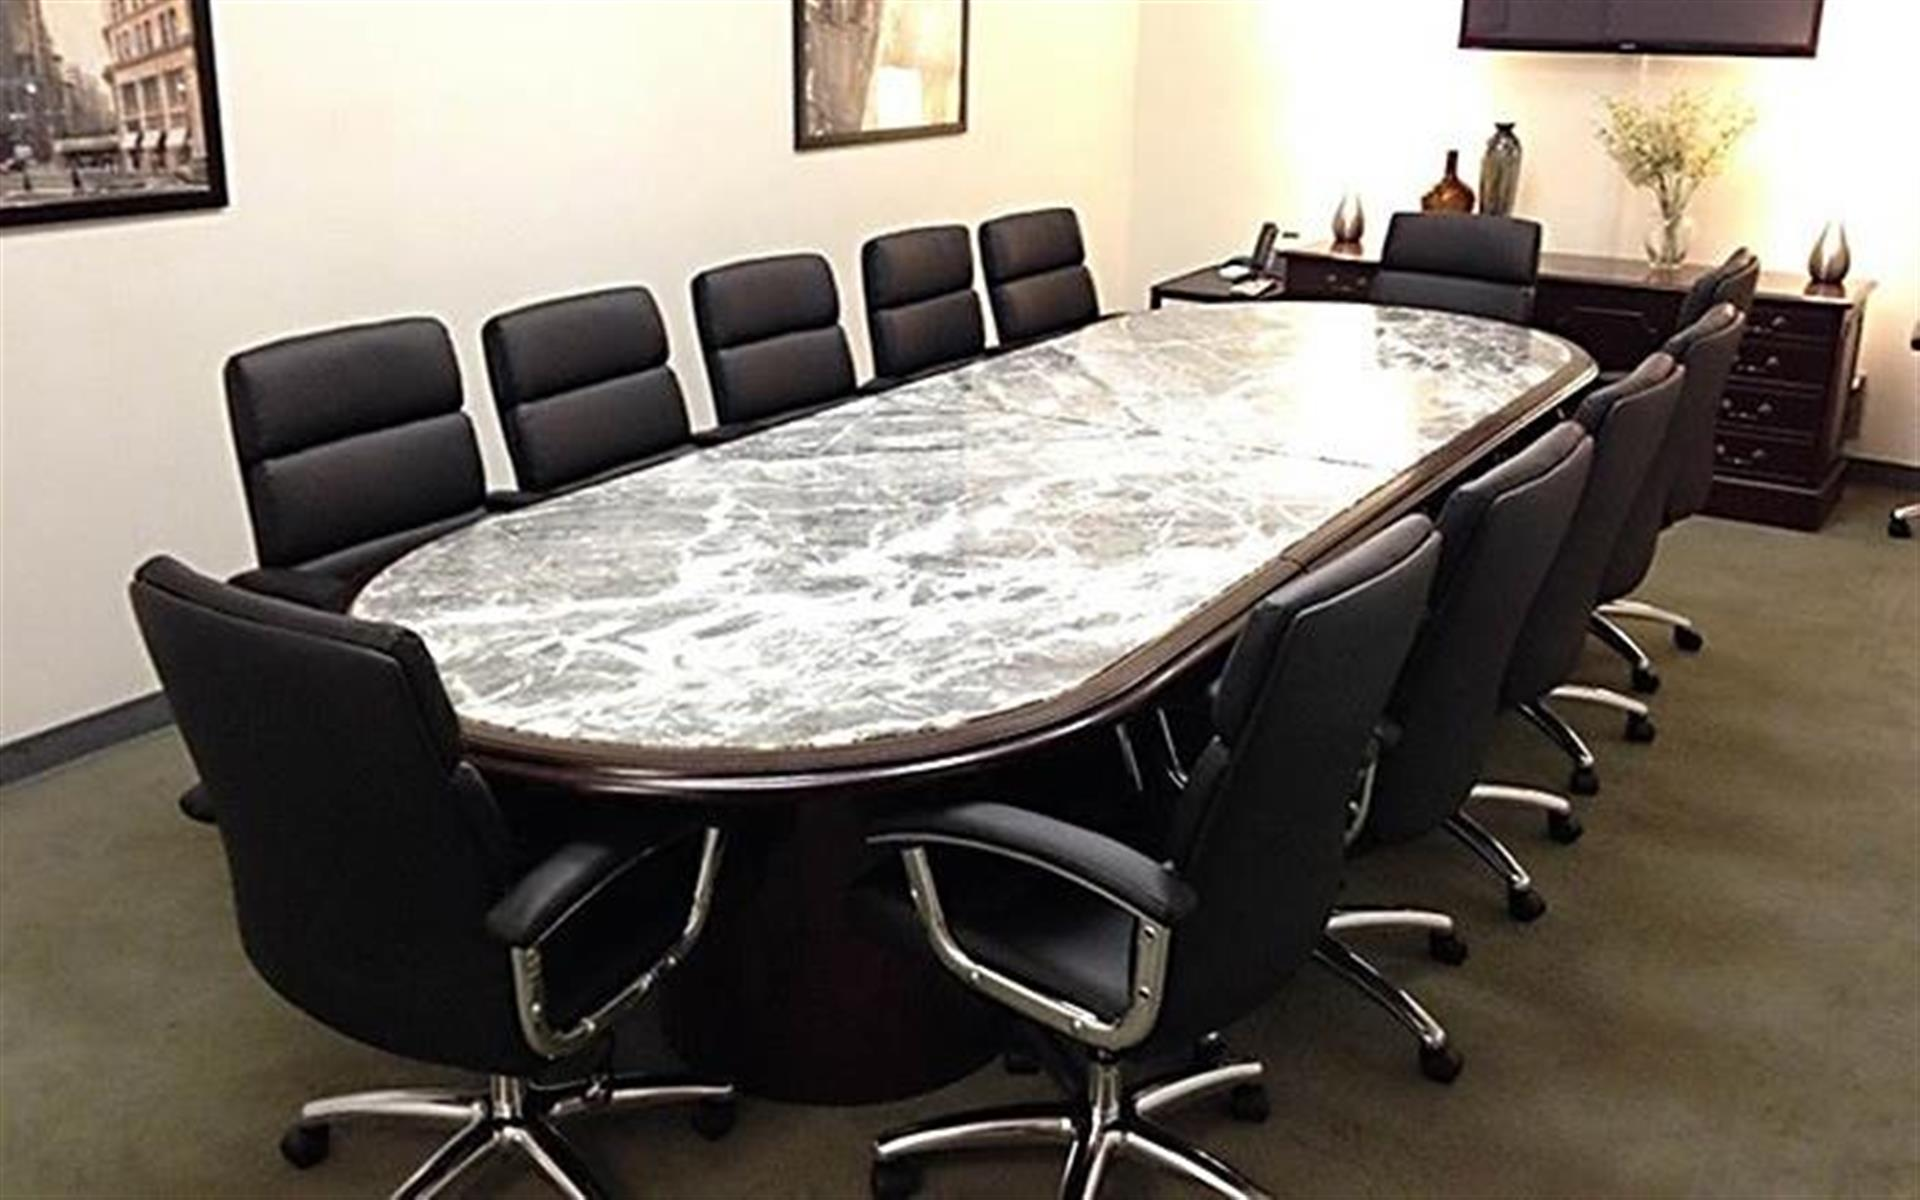 NYC Office Suites 708 (3rd Ave. & 44th) - Executive Boardroom 708 (Cap. 18)